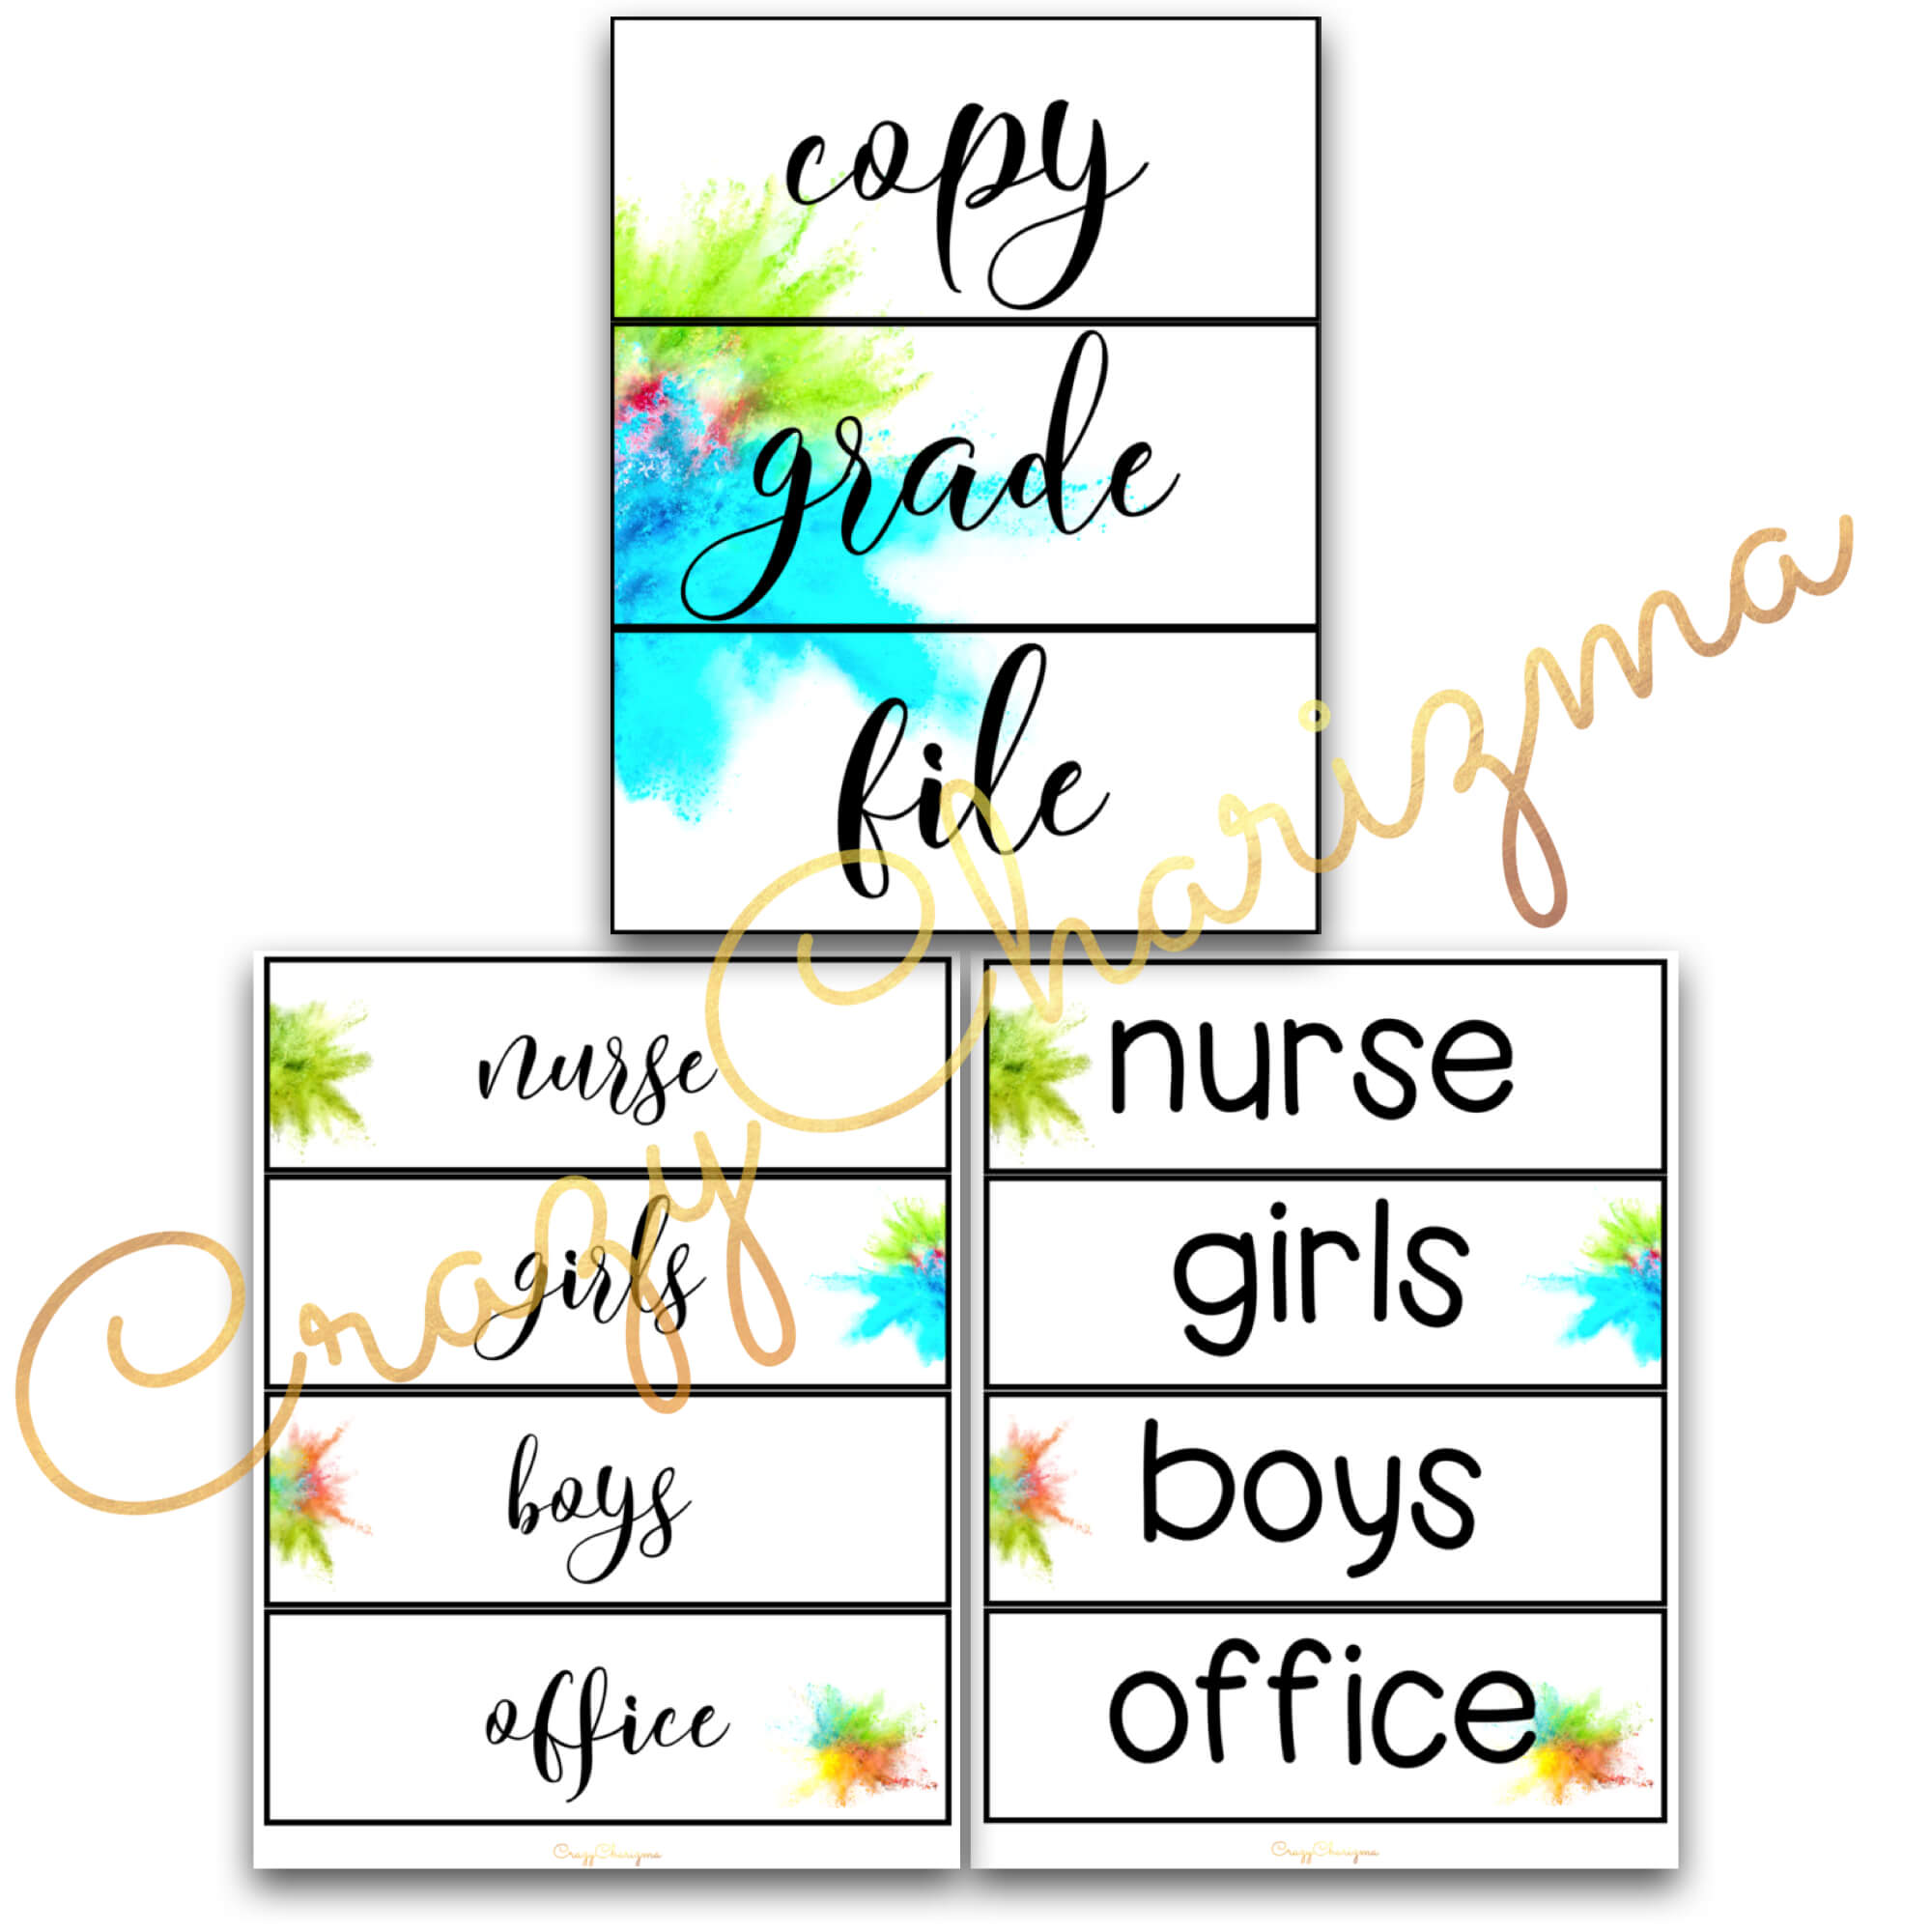 Looking for bright and clear classroom decor? Spice your classroom with these beautiful EDITABLE hall passes, labels, team signs and pencil tags.